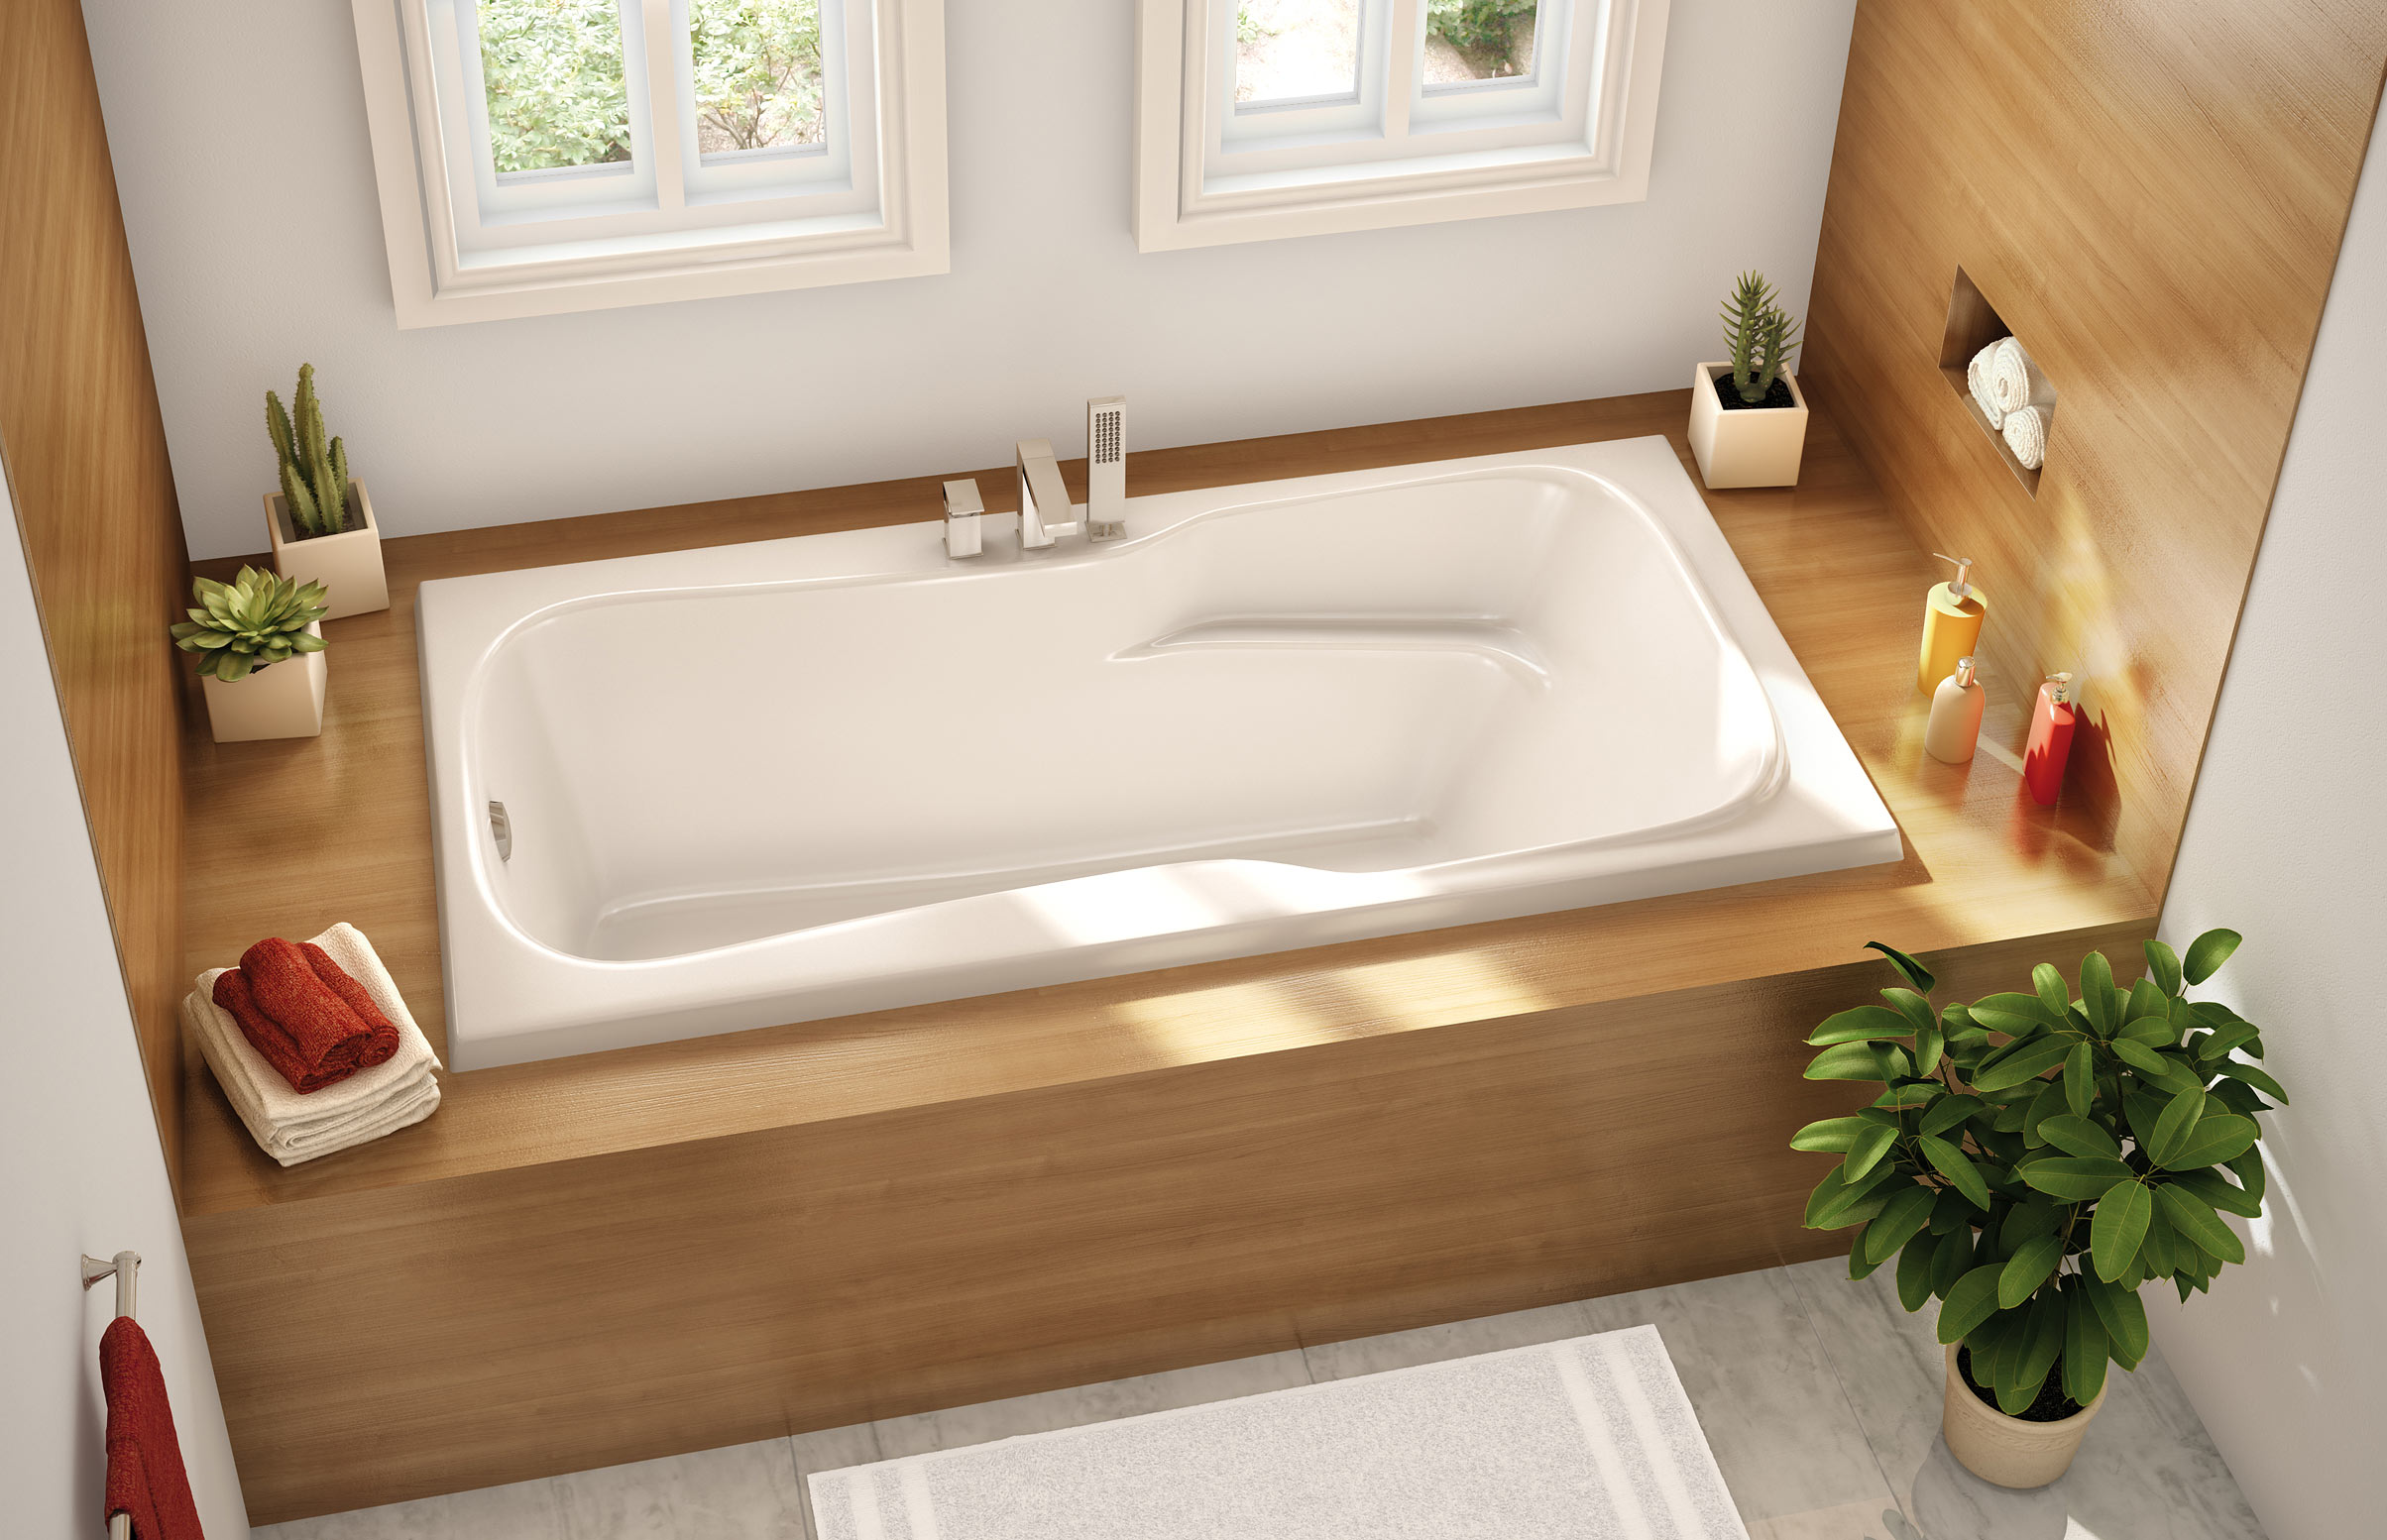 spa bathtubs for small spaces the best design ideas for hot tubs